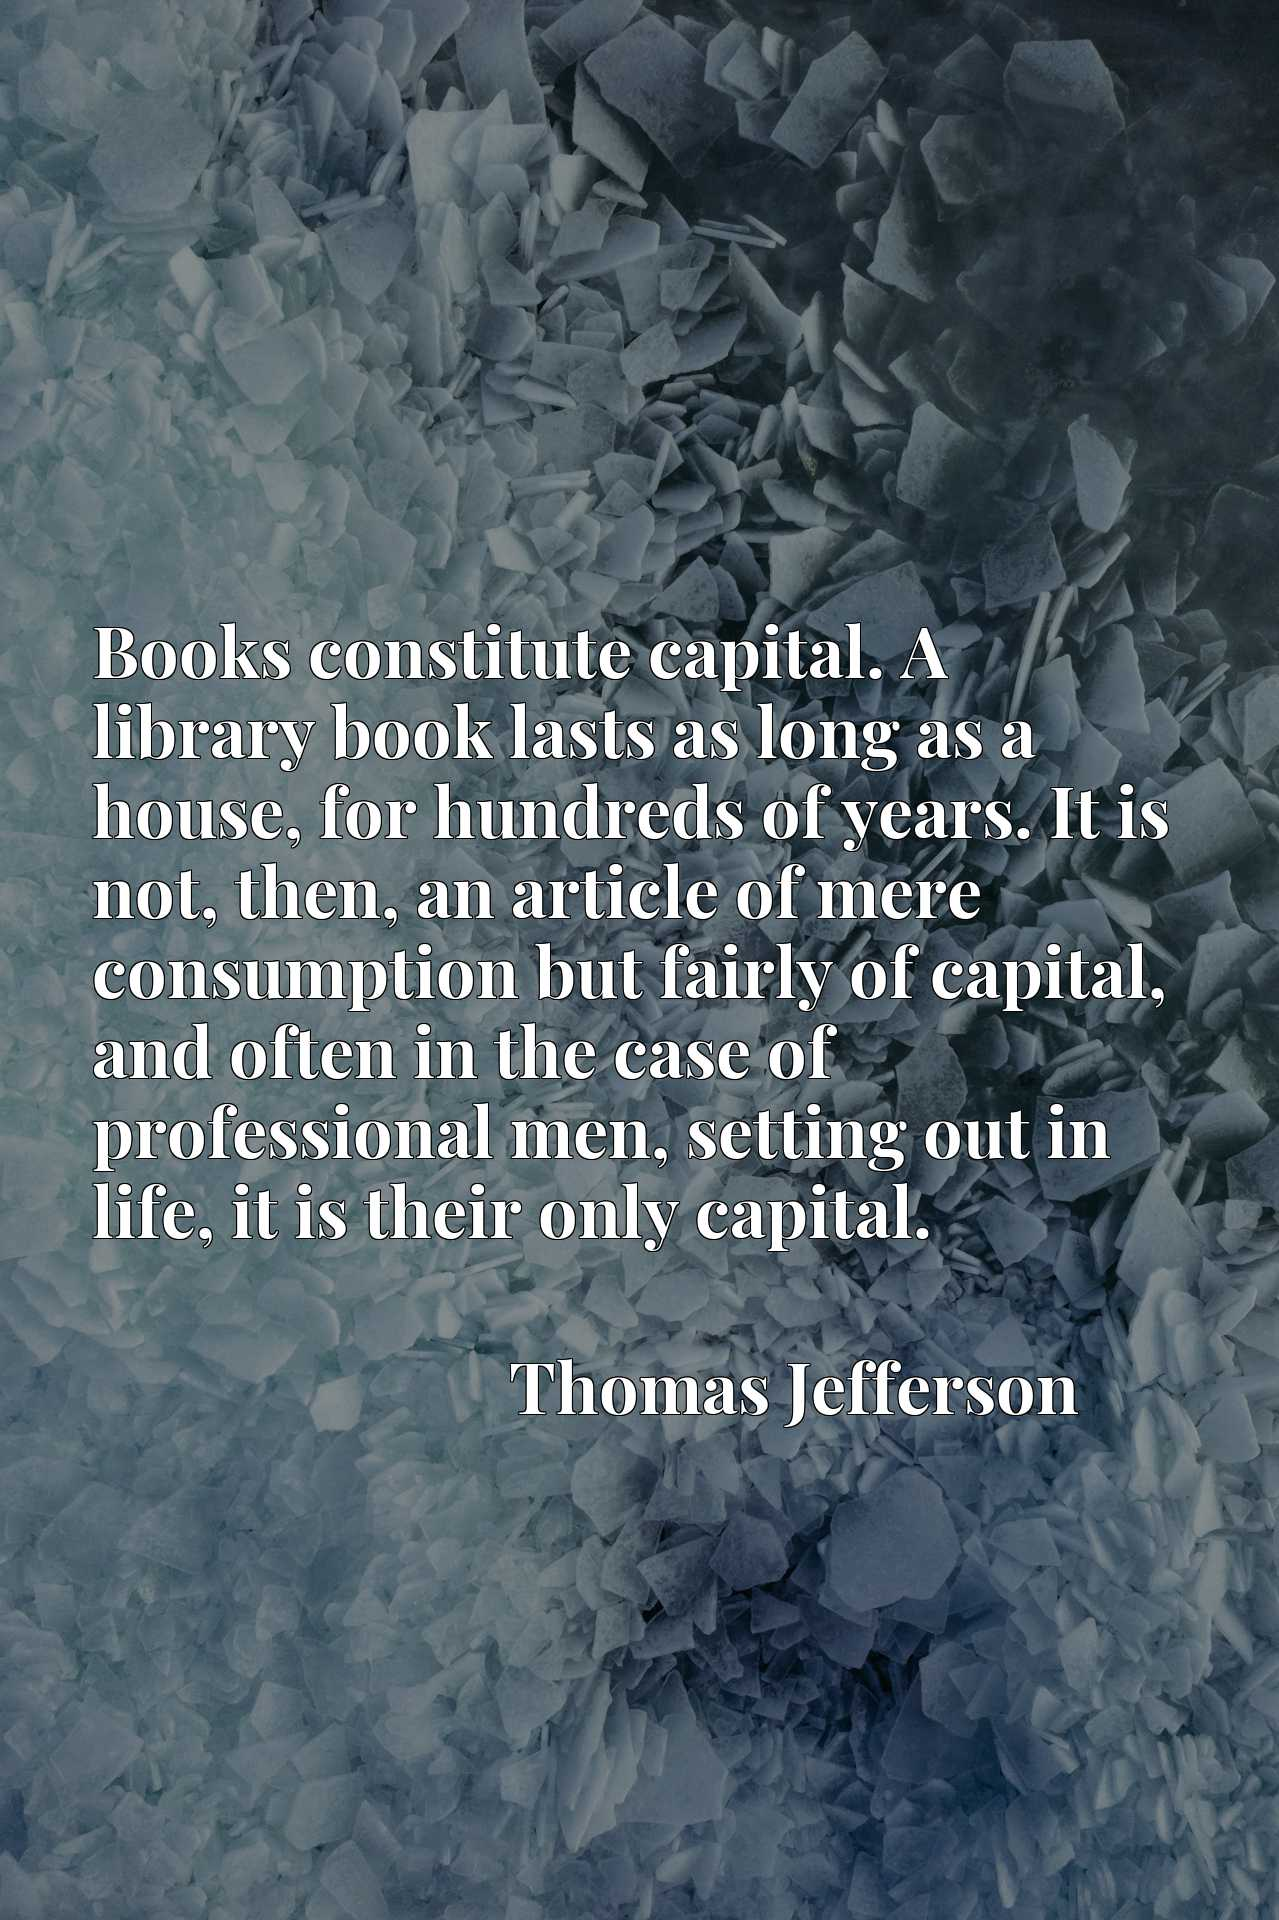 Books constitute capital. A library book lasts as long as a house, for hundreds of years. It is not, then, an article of mere consumption but fairly of capital, and often in the case of professional men, setting out in life, it is their only capital.